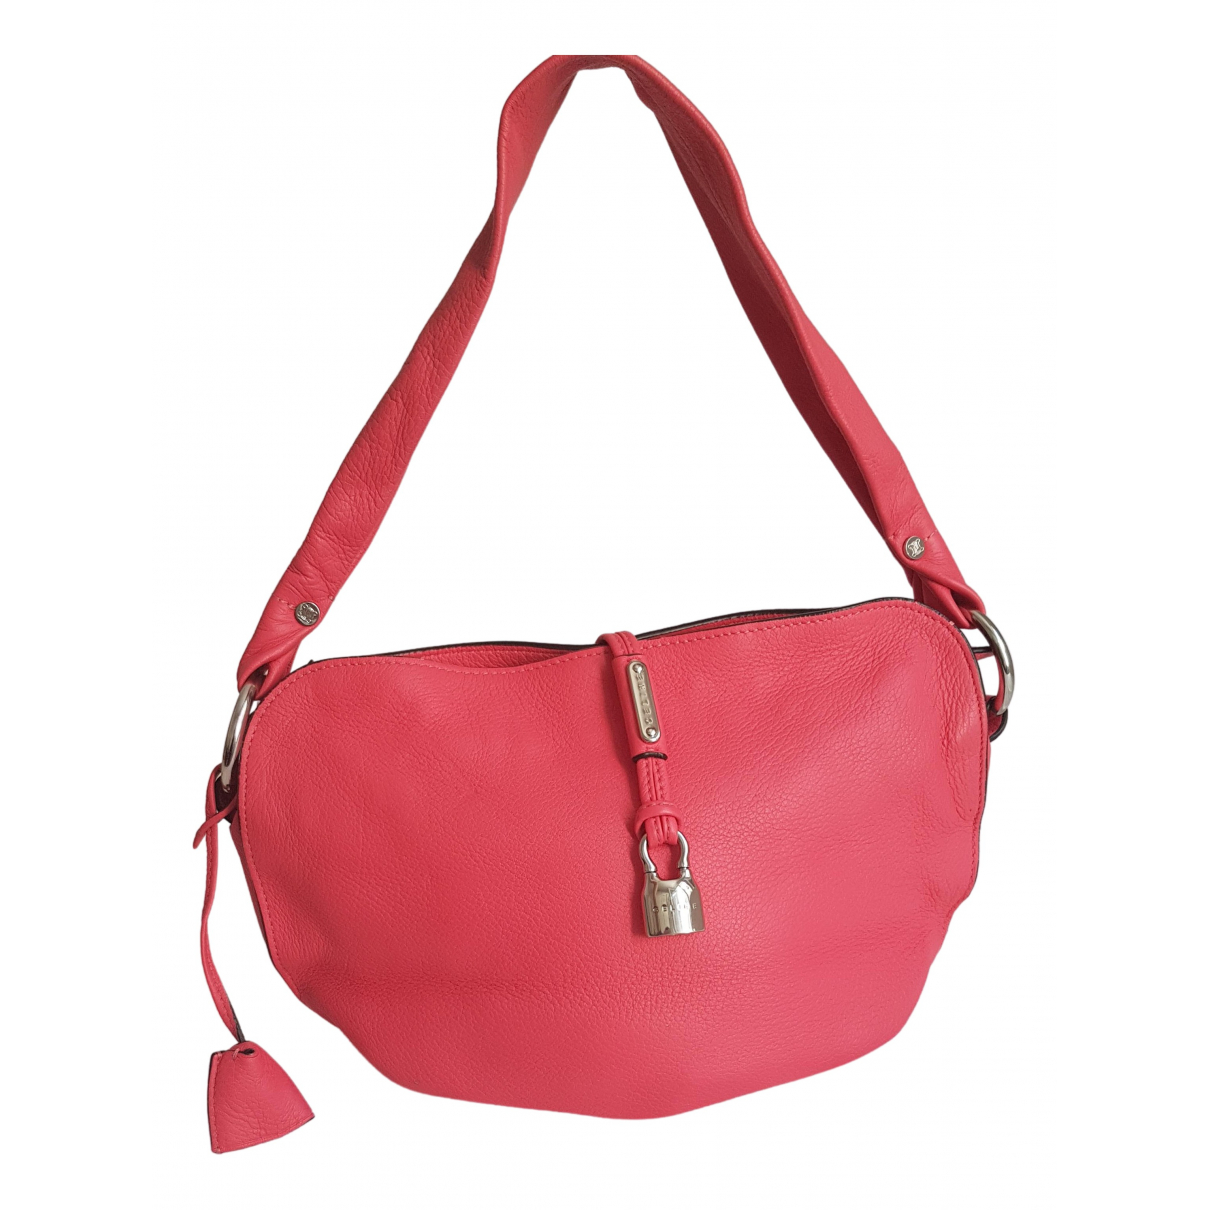 Celine \N Pink Leather handbag for Women \N